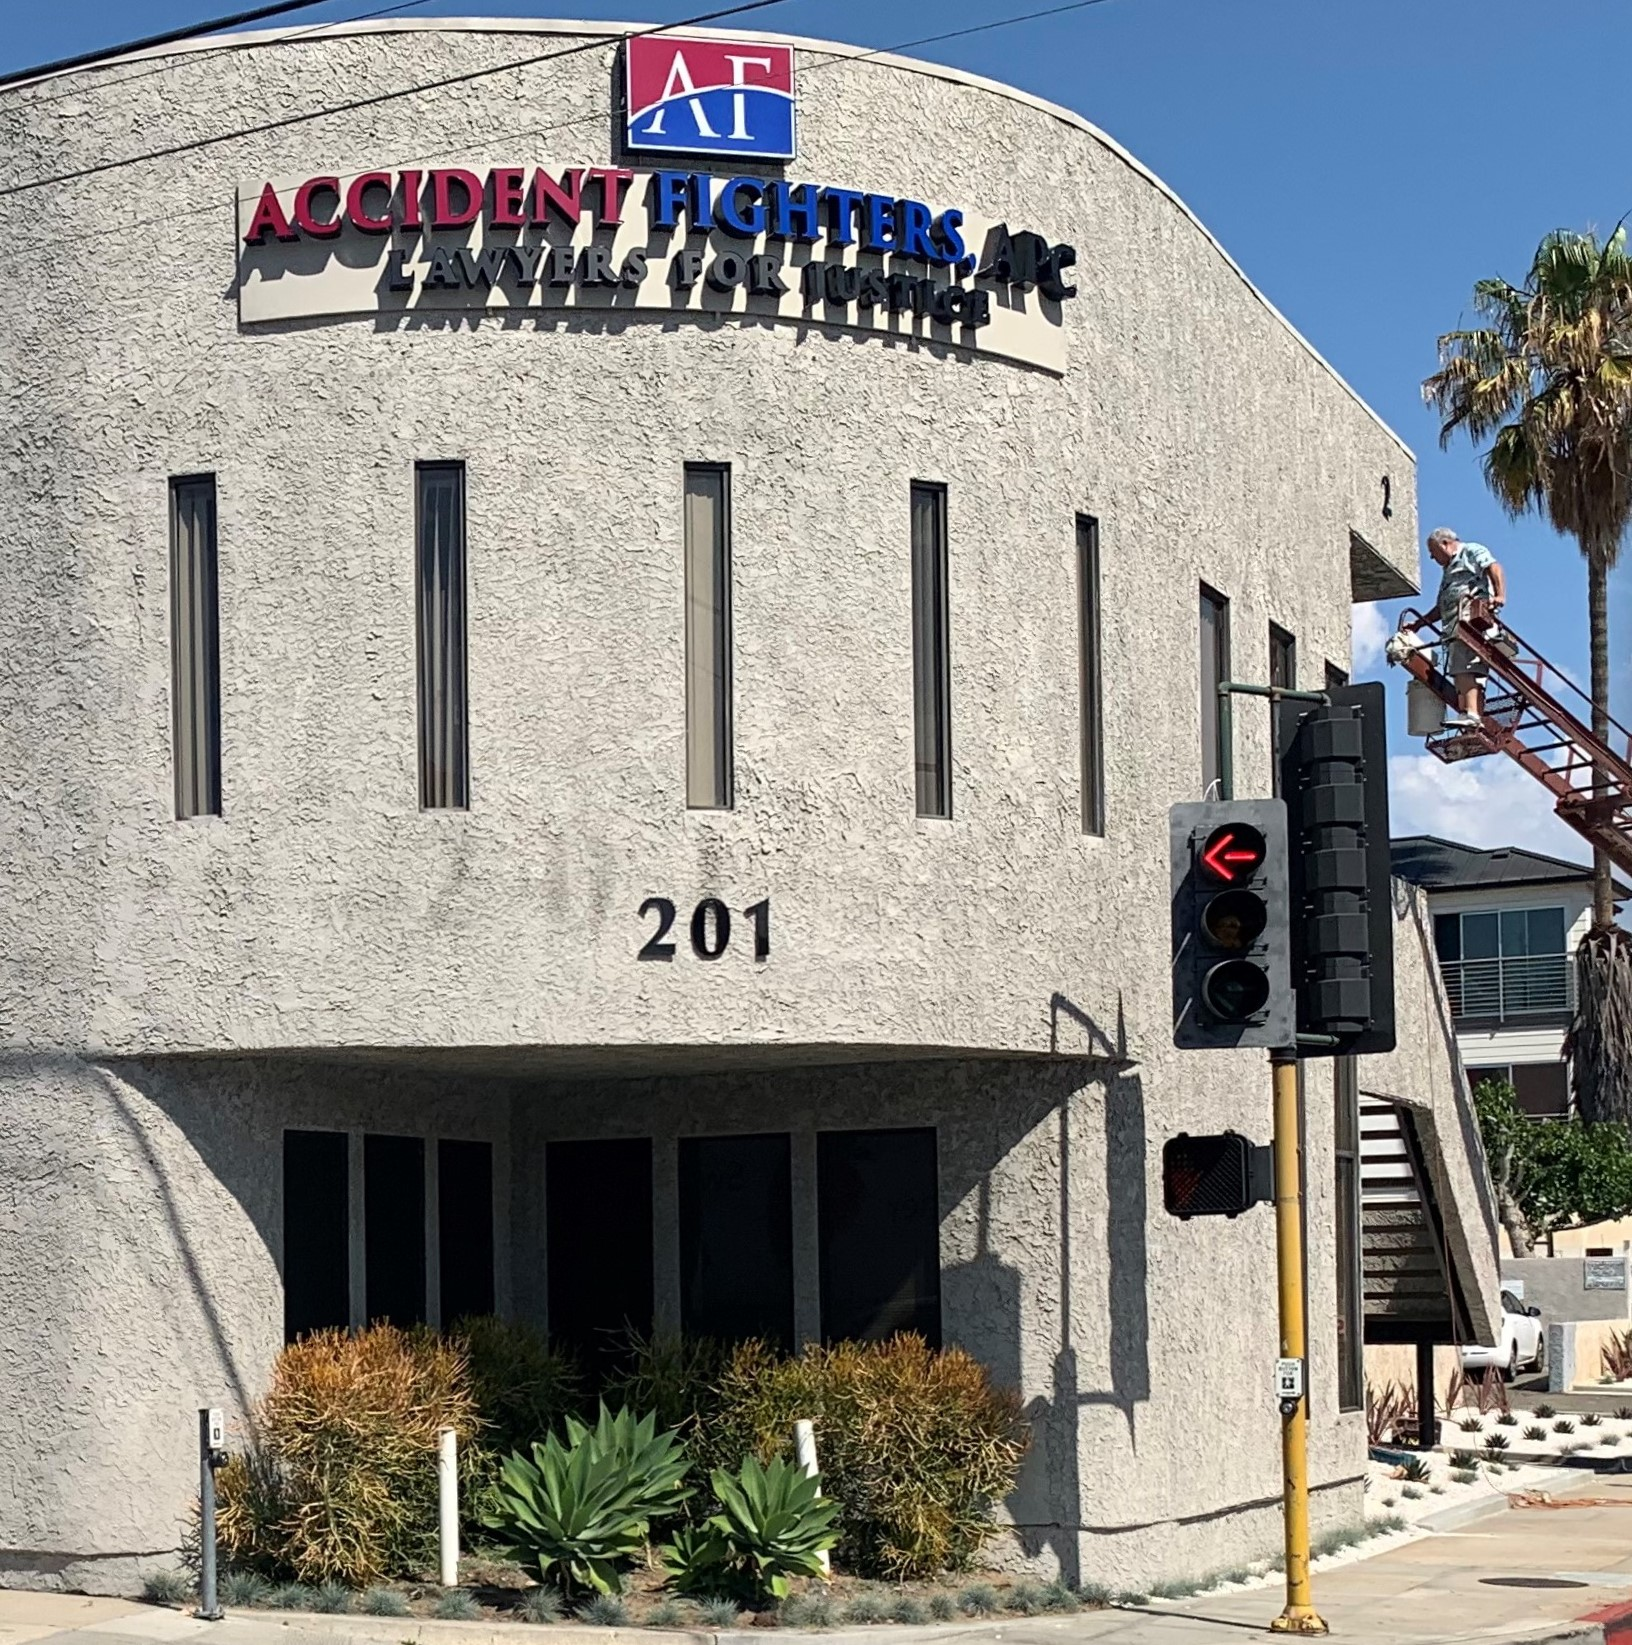 Our sign package for Address Fighters includes address numbers building signs for their Burbank office along with the front lit channel letters and a light box.